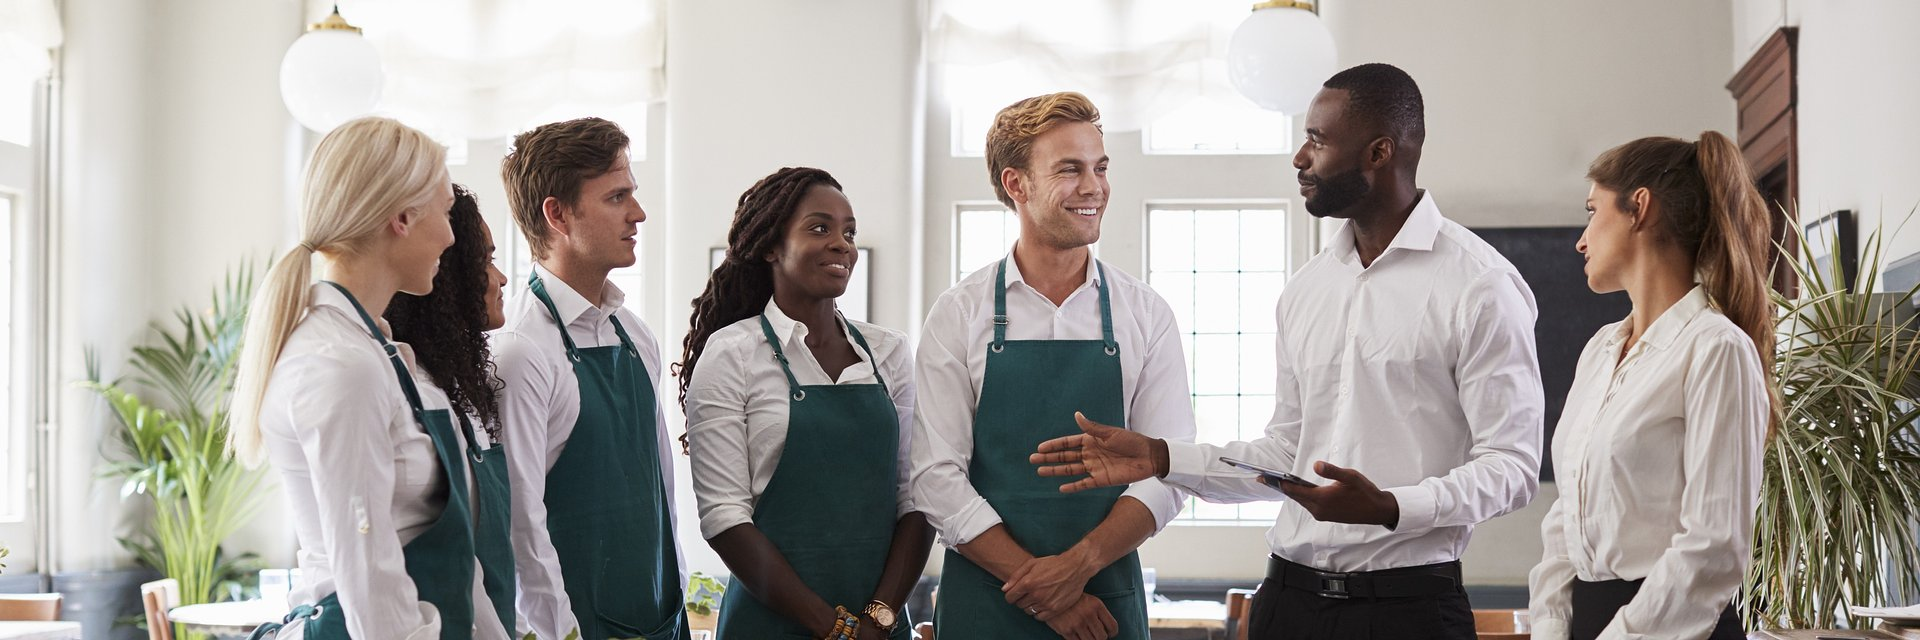 10 Tips For Your Restaurant Staff Meetings